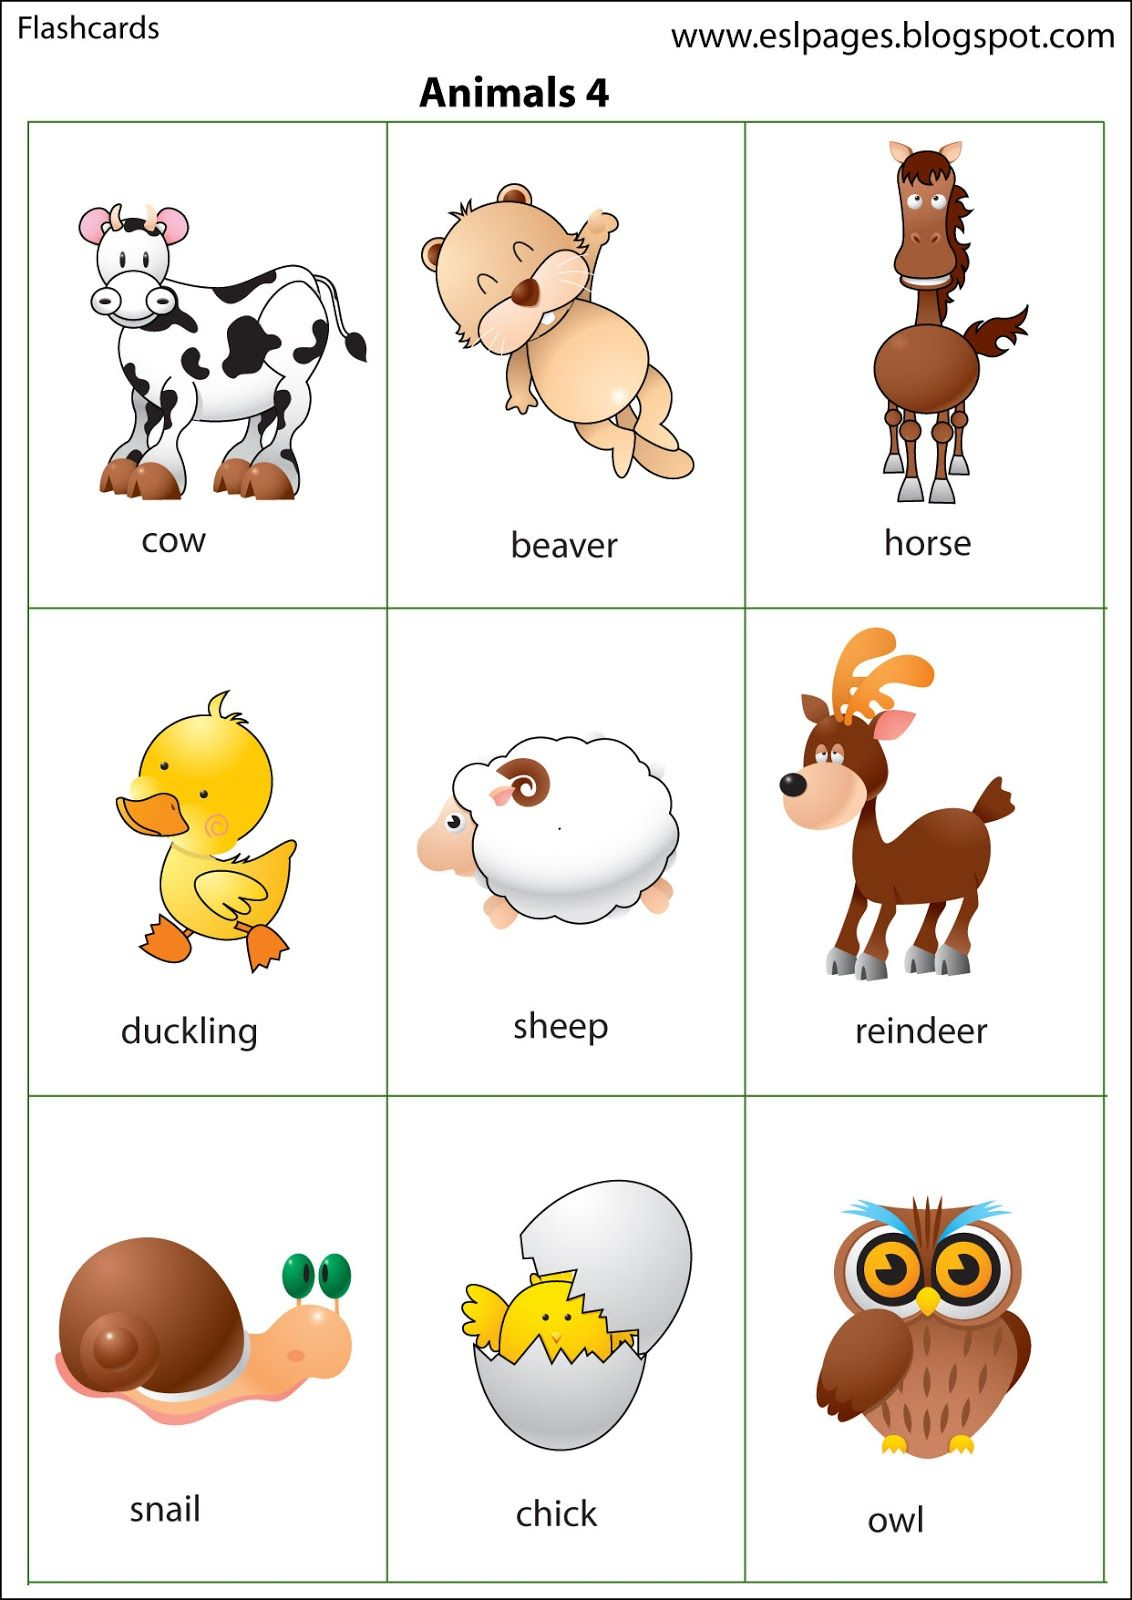 Esl Pages Animals Flashcards and pictures like that